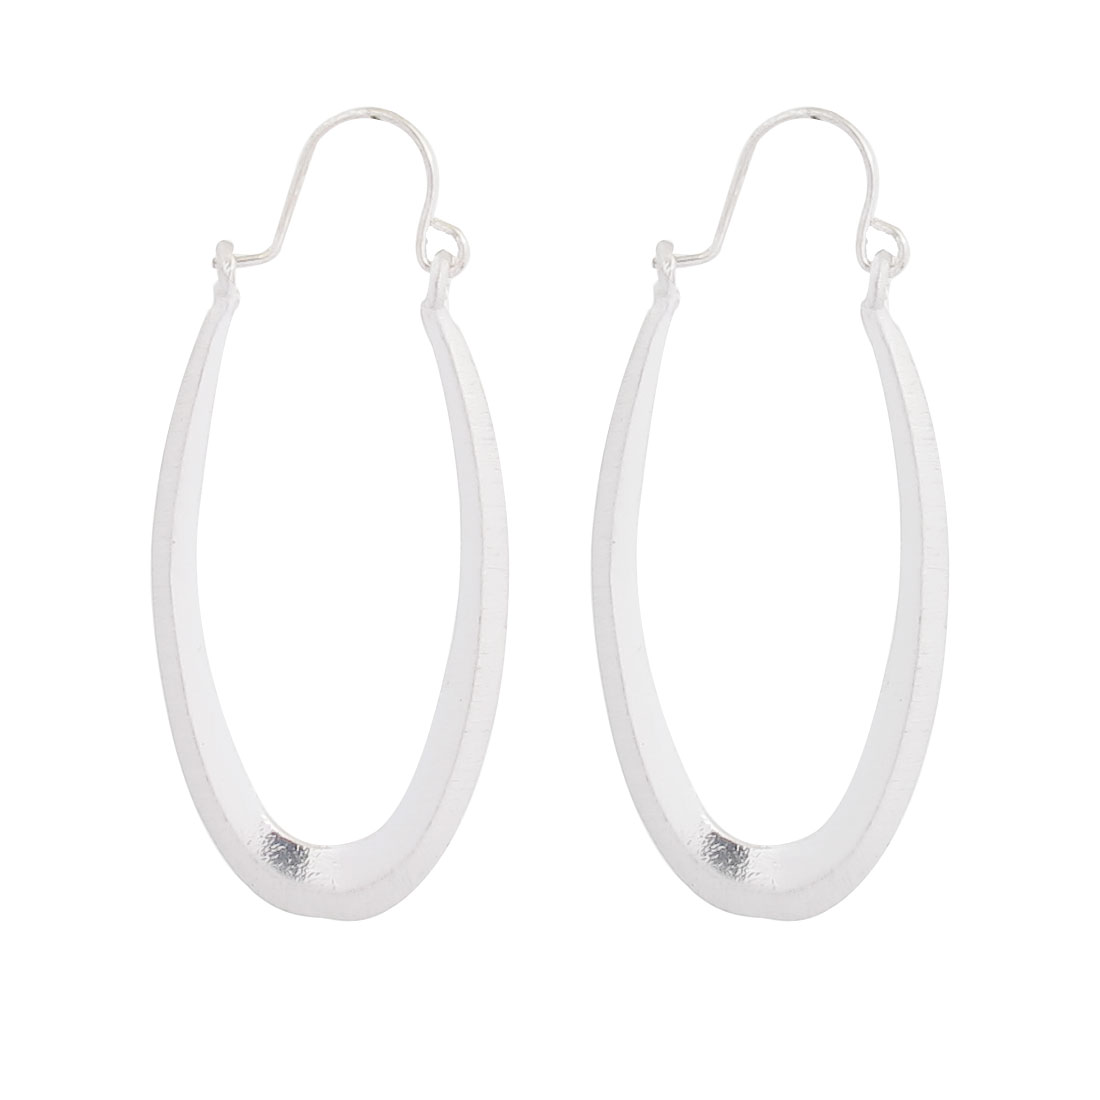 "2"" Dia Silver Tone Metal Smooth Edge Oval Circle Pierced Hoop Earrings Pair for Lady Women"